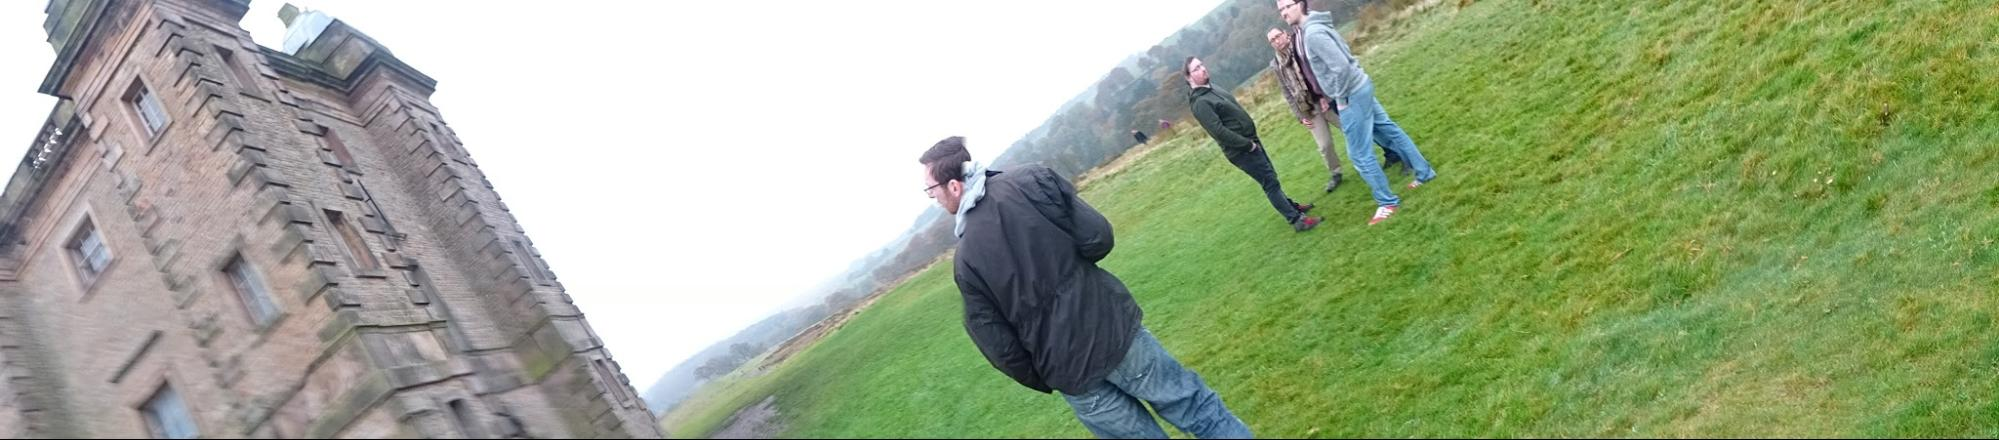 Adam Admiring the Lyme Park Cage